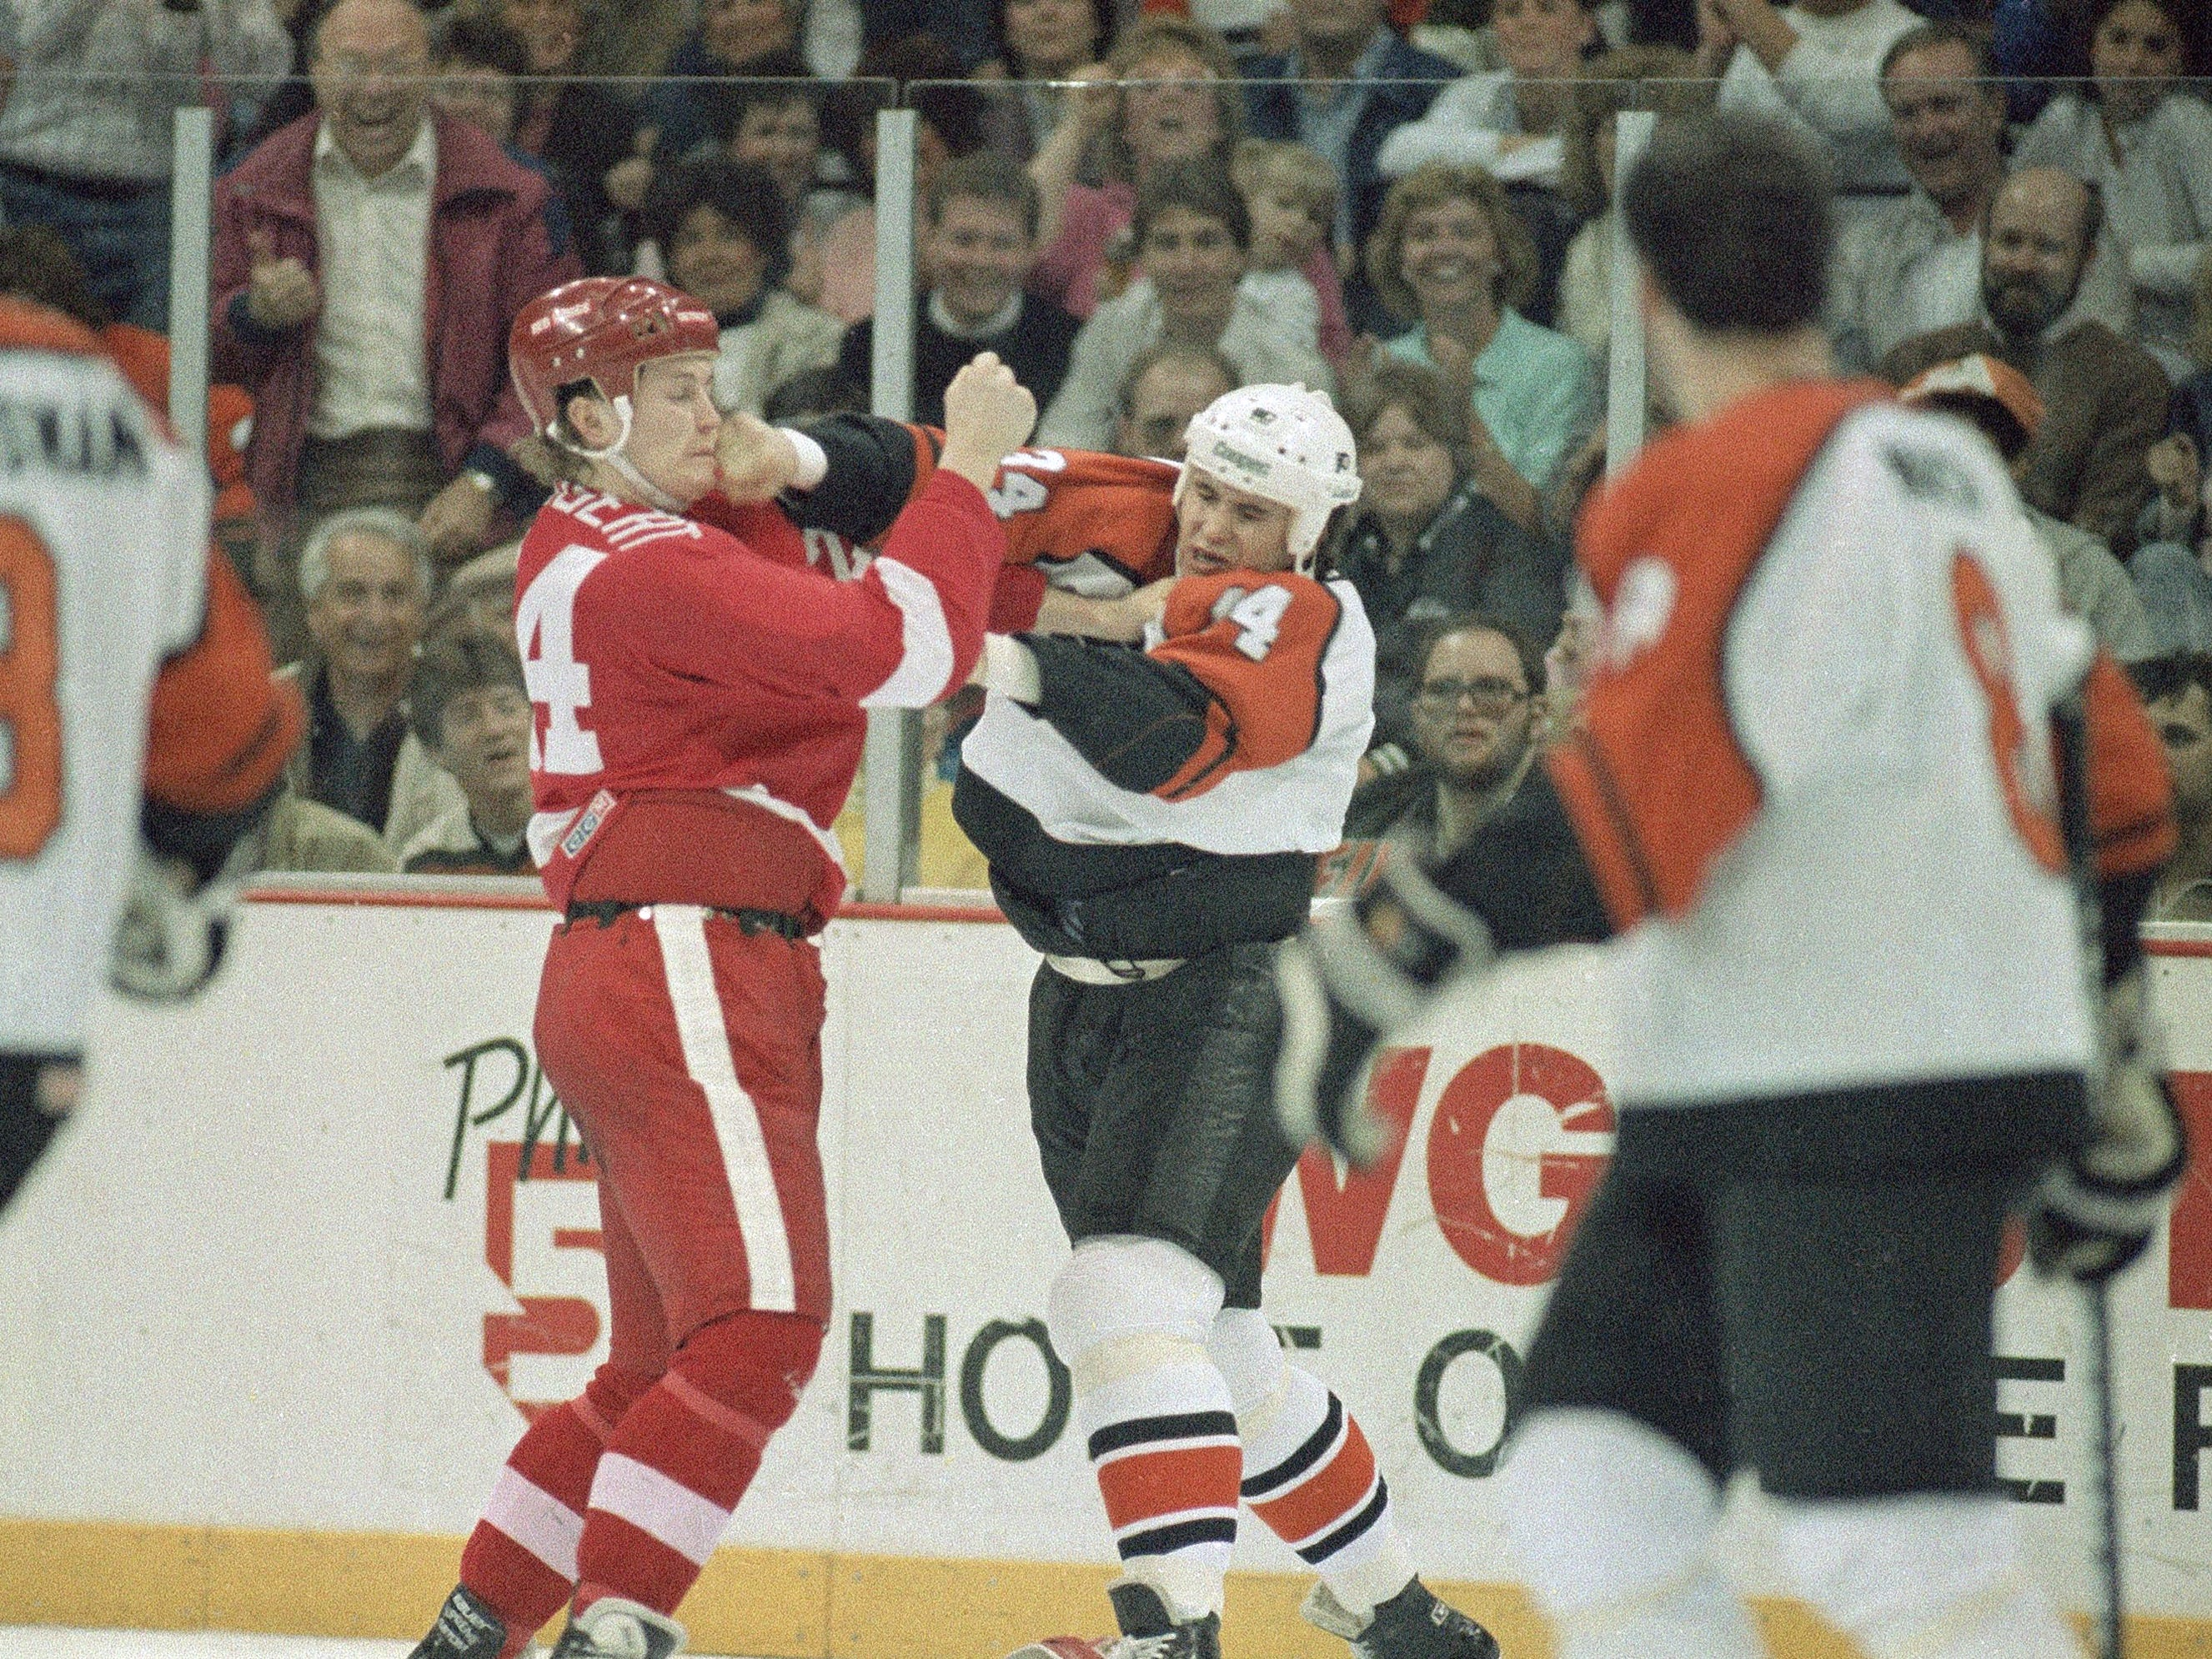 Philadelphia Flyers left wing Craig Berube, right, follows through with a right hand to Detroit Red Wings left wing Bob Probert's face during a fight in the first period of 1987 game at the Spectrum in Philadelphia.